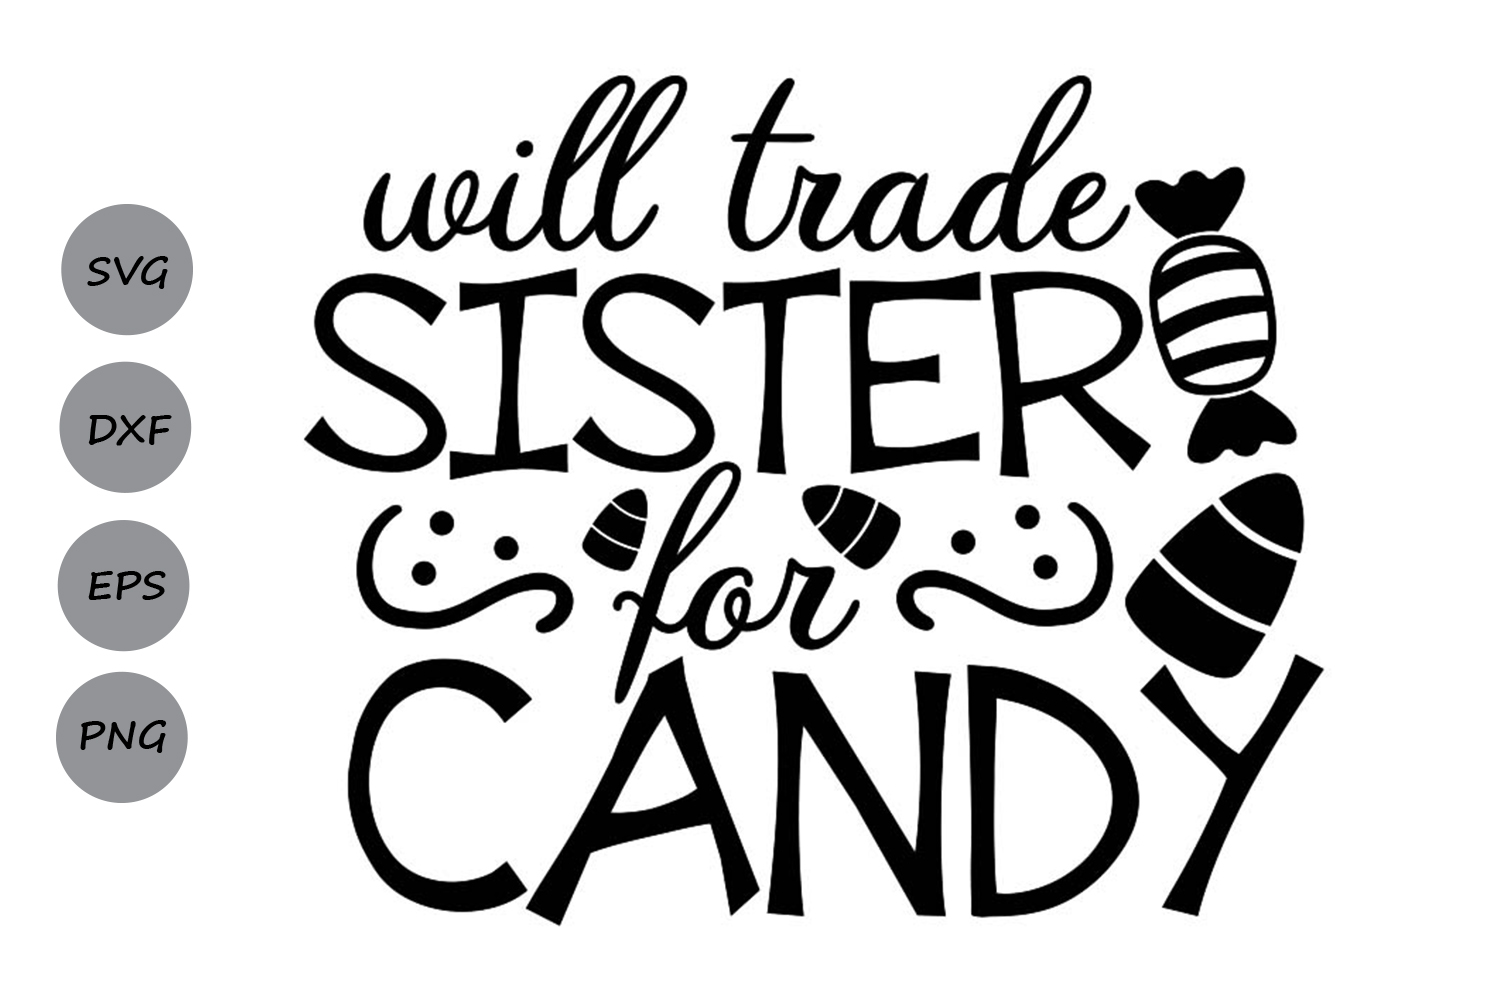 Download Free Will Trade Sister For Candy Graphic By Cosmosfineart Creative SVG Cut Files